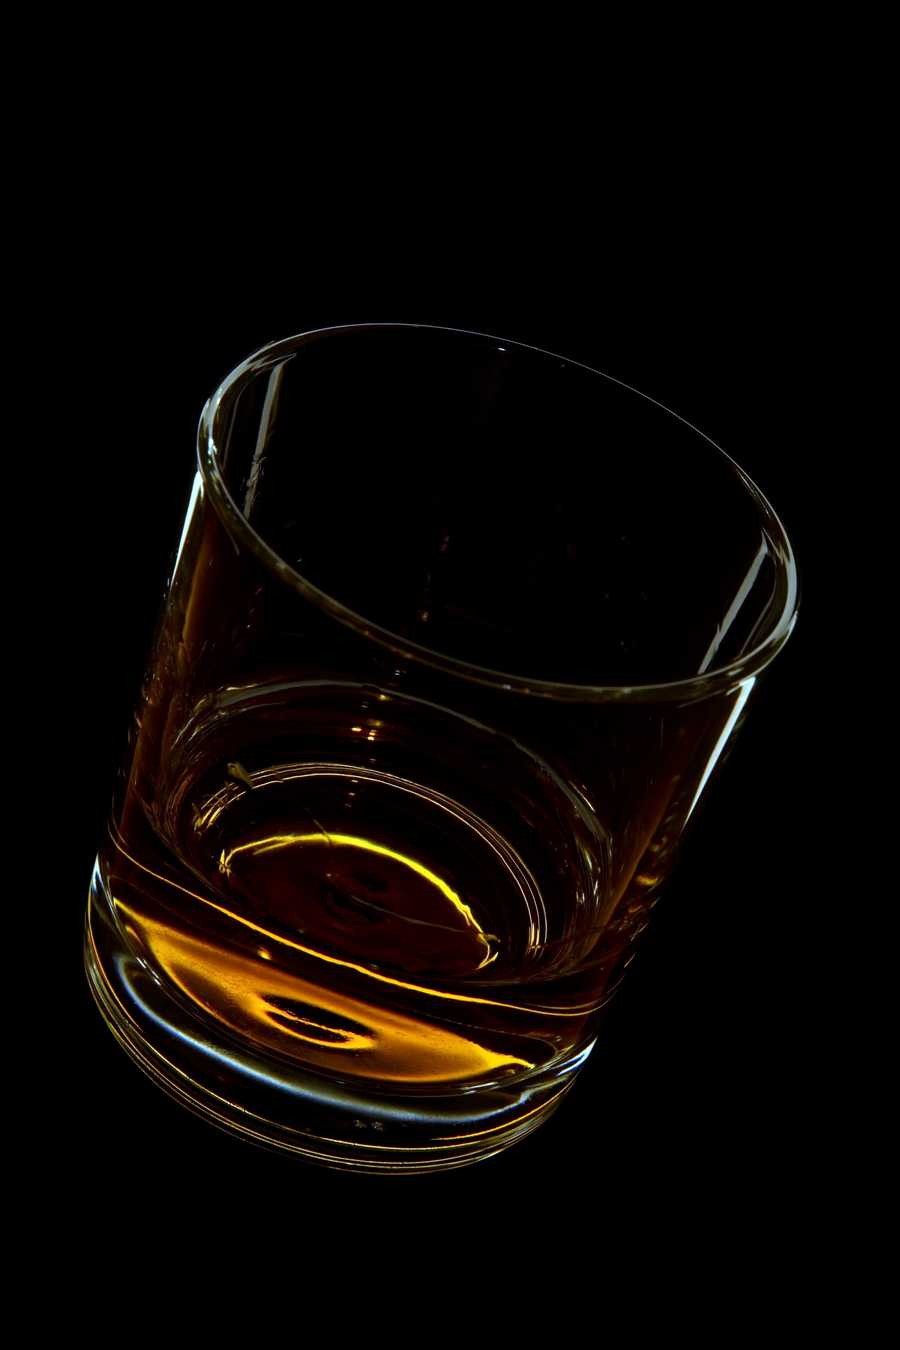 3. Avoid alcohol: Grinding tends to be more intense after drinking alcohol.